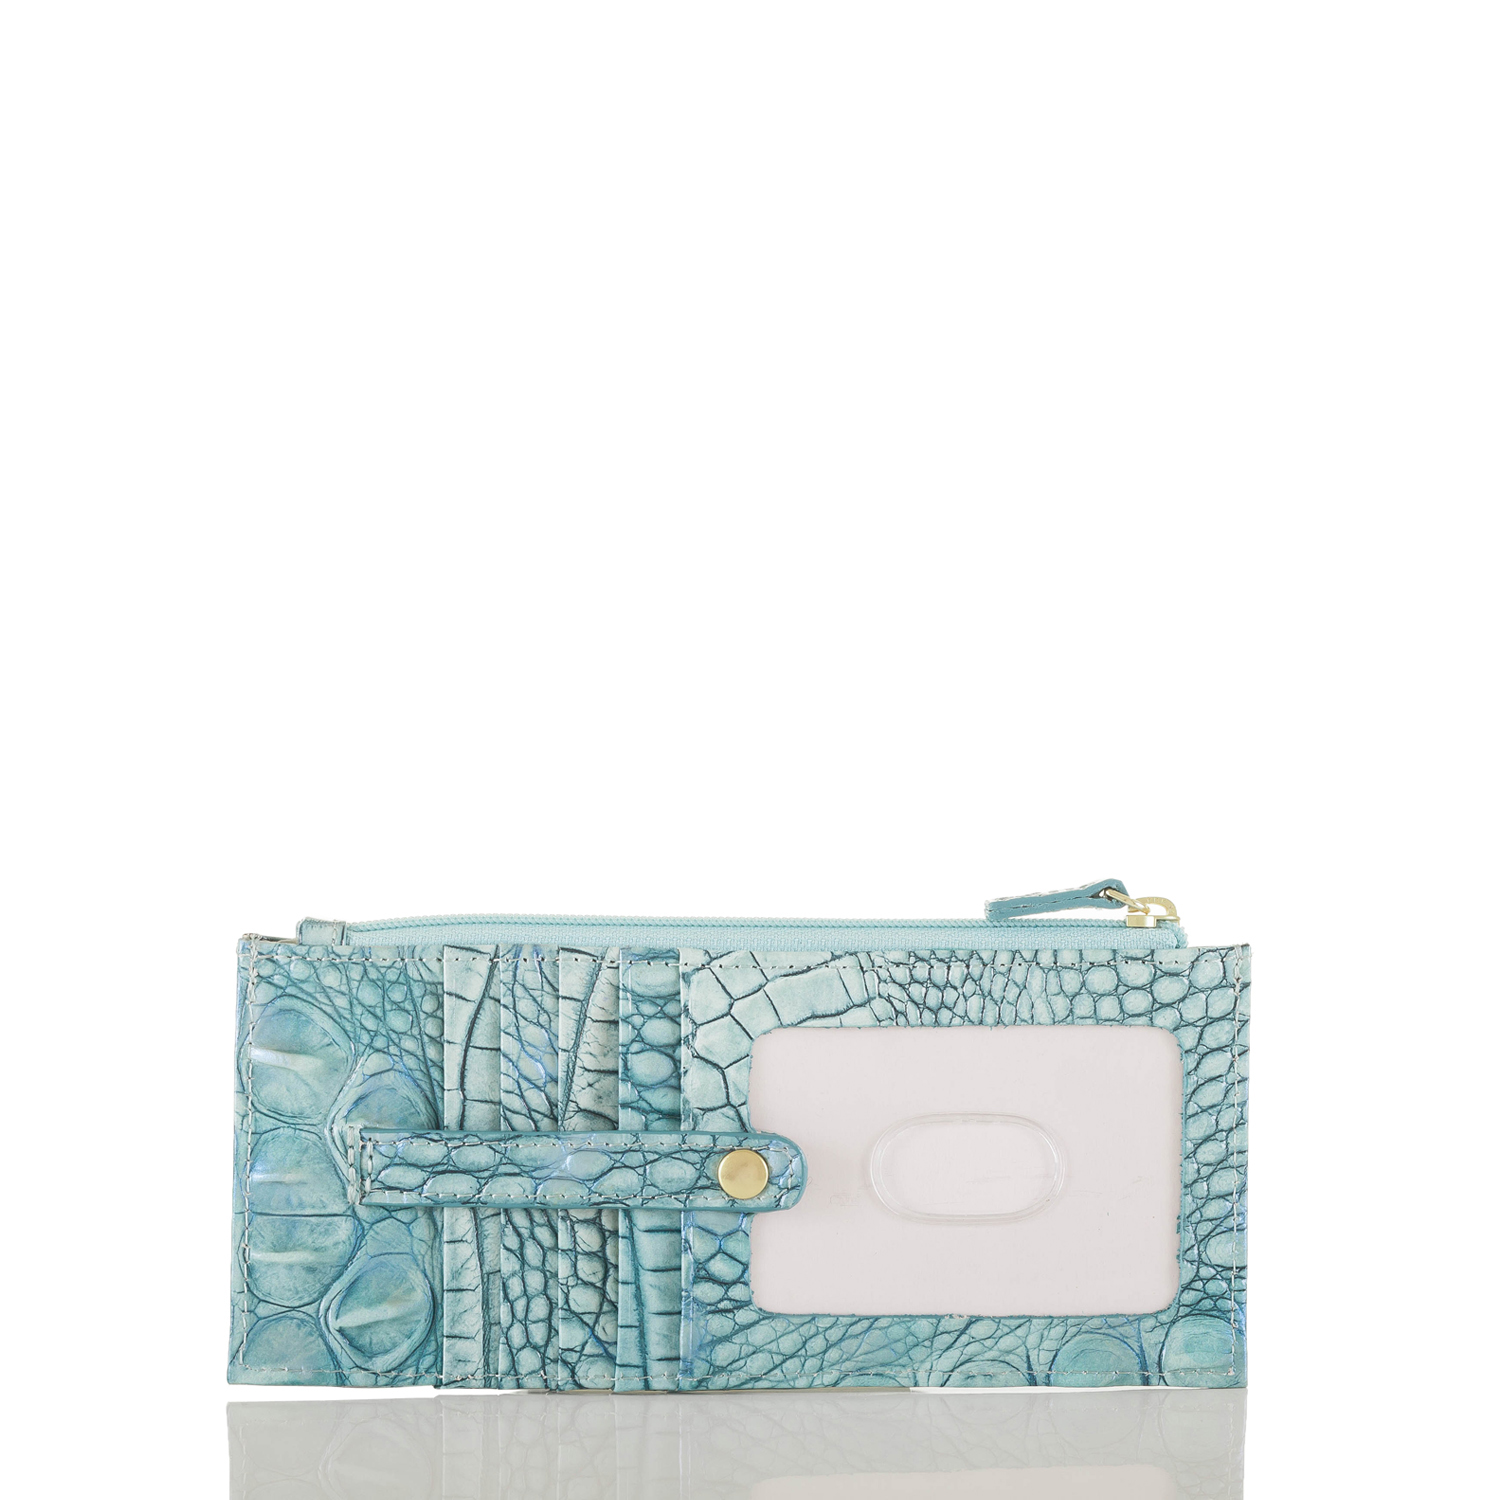 Credit Card Wallet Astral Melbourne